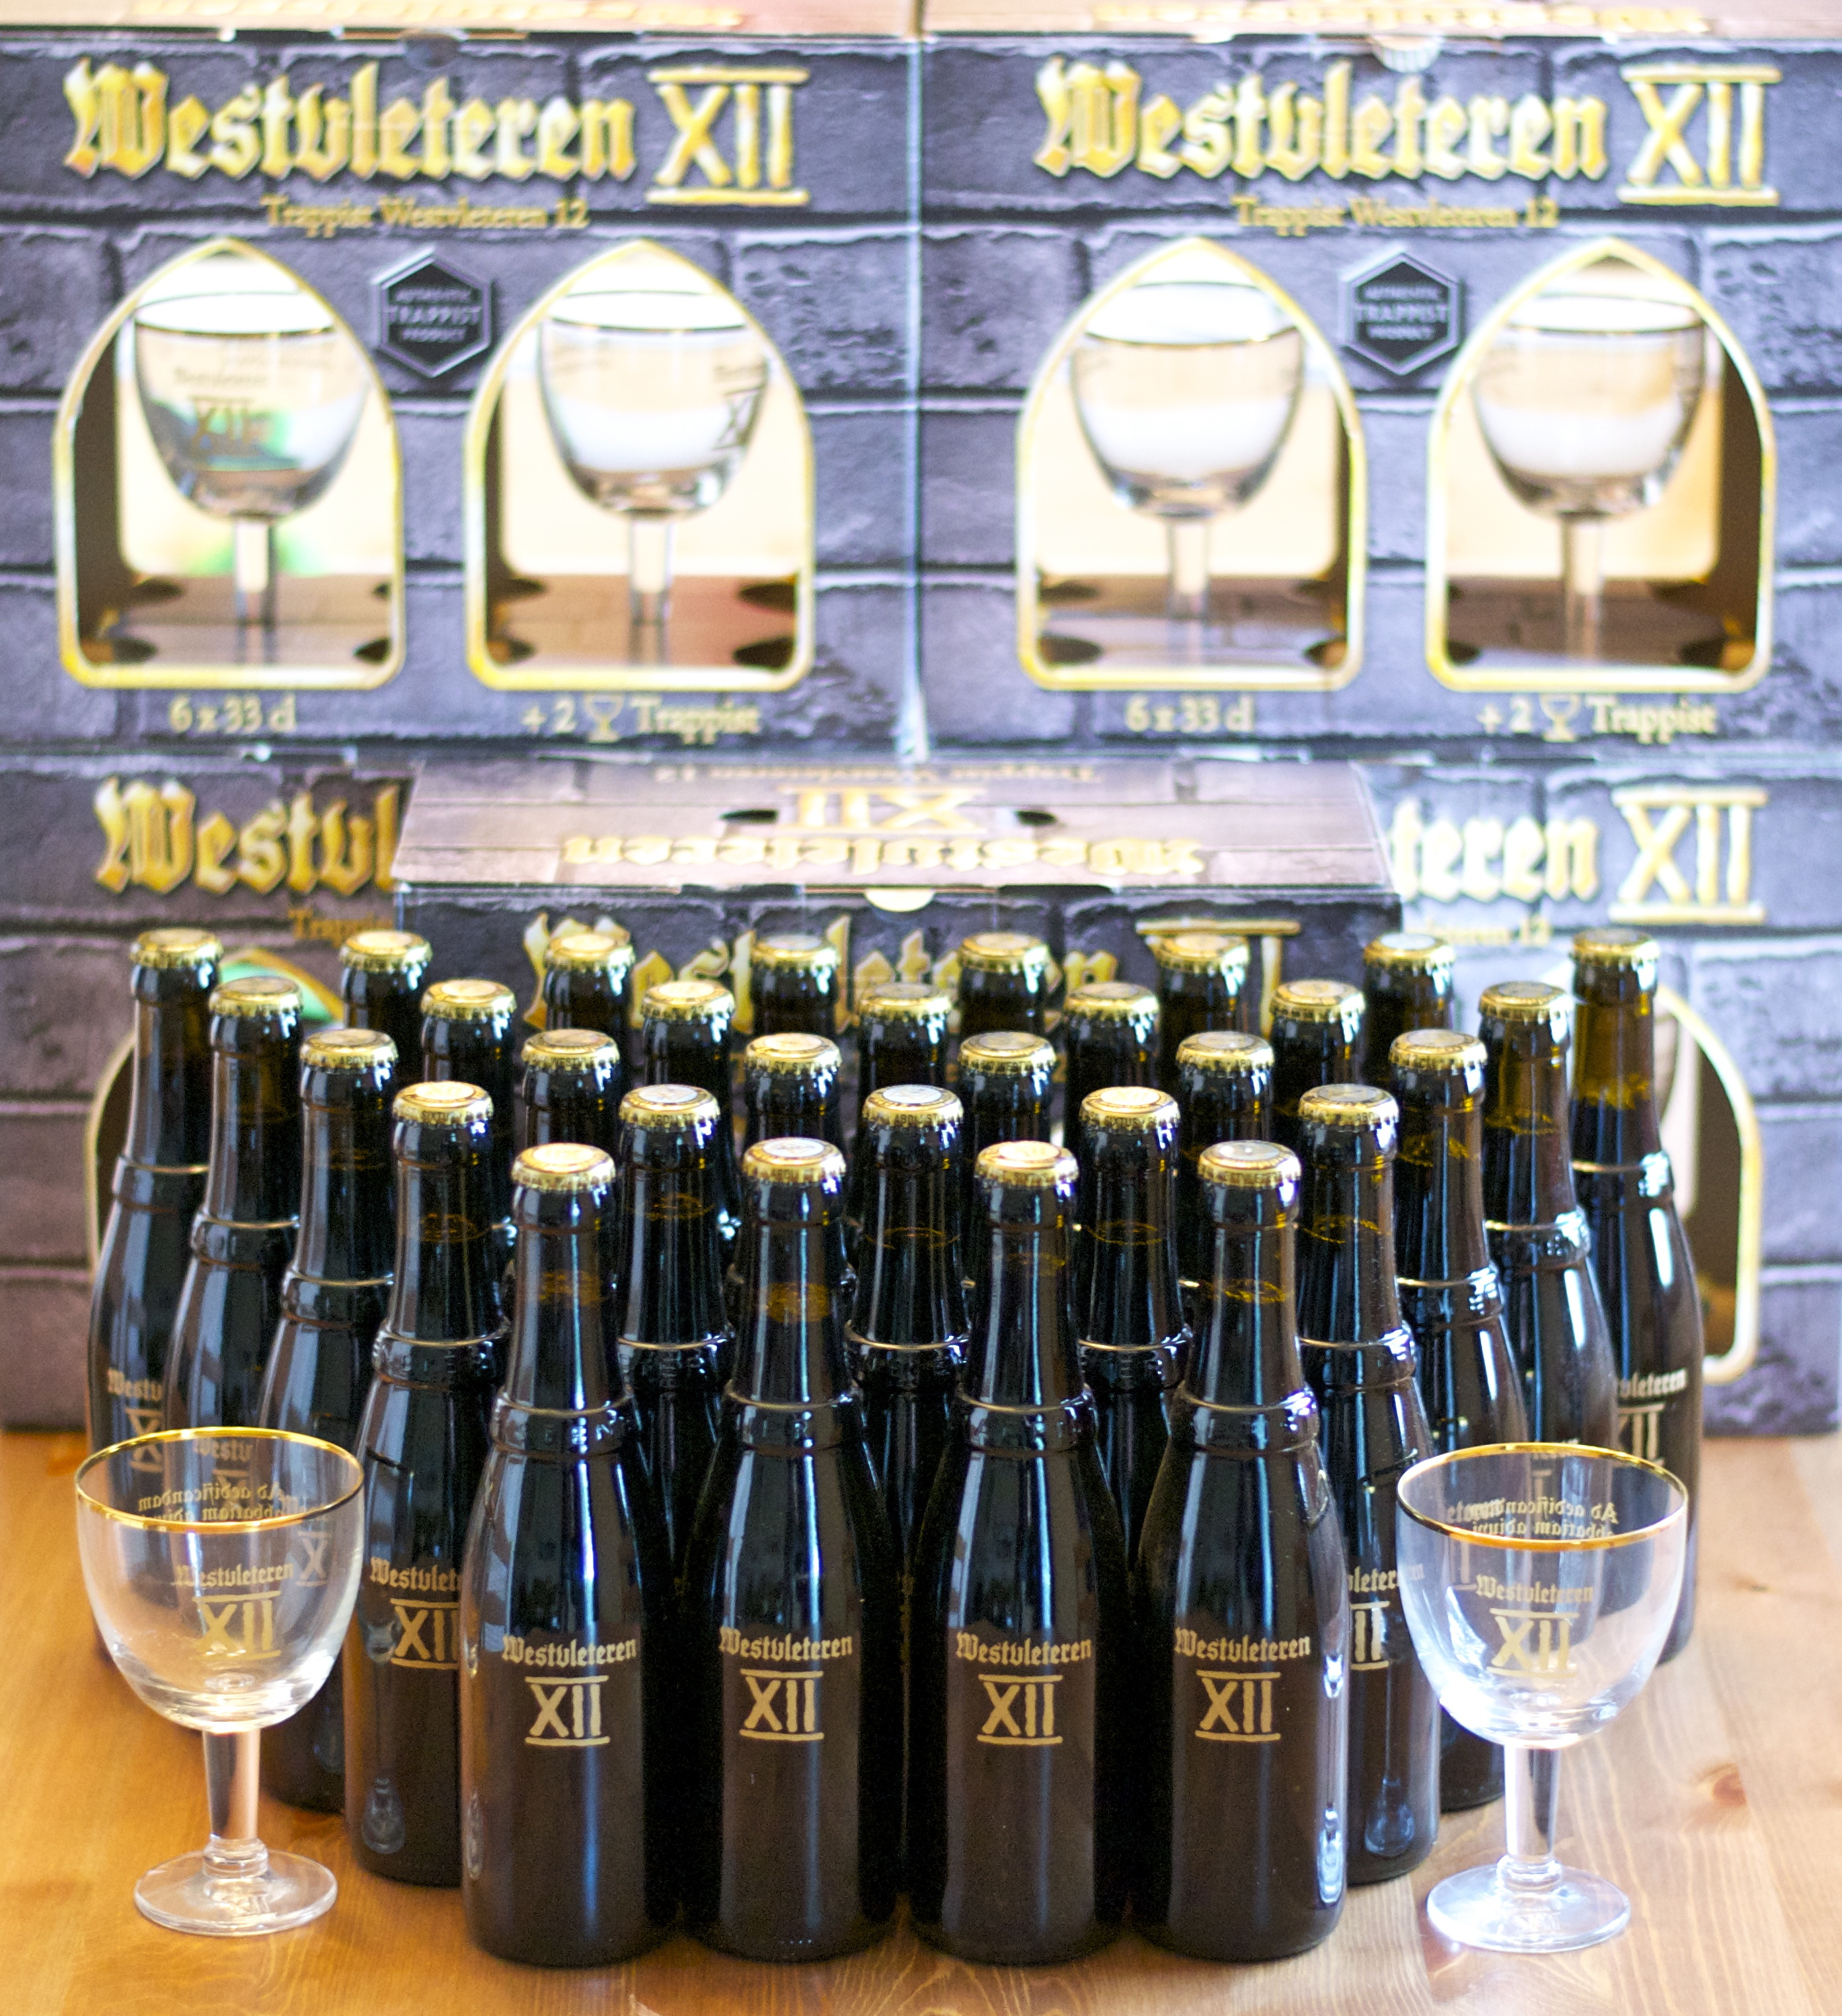 Thirty Bottles Of Westvleteren Xii With Gift Packaging